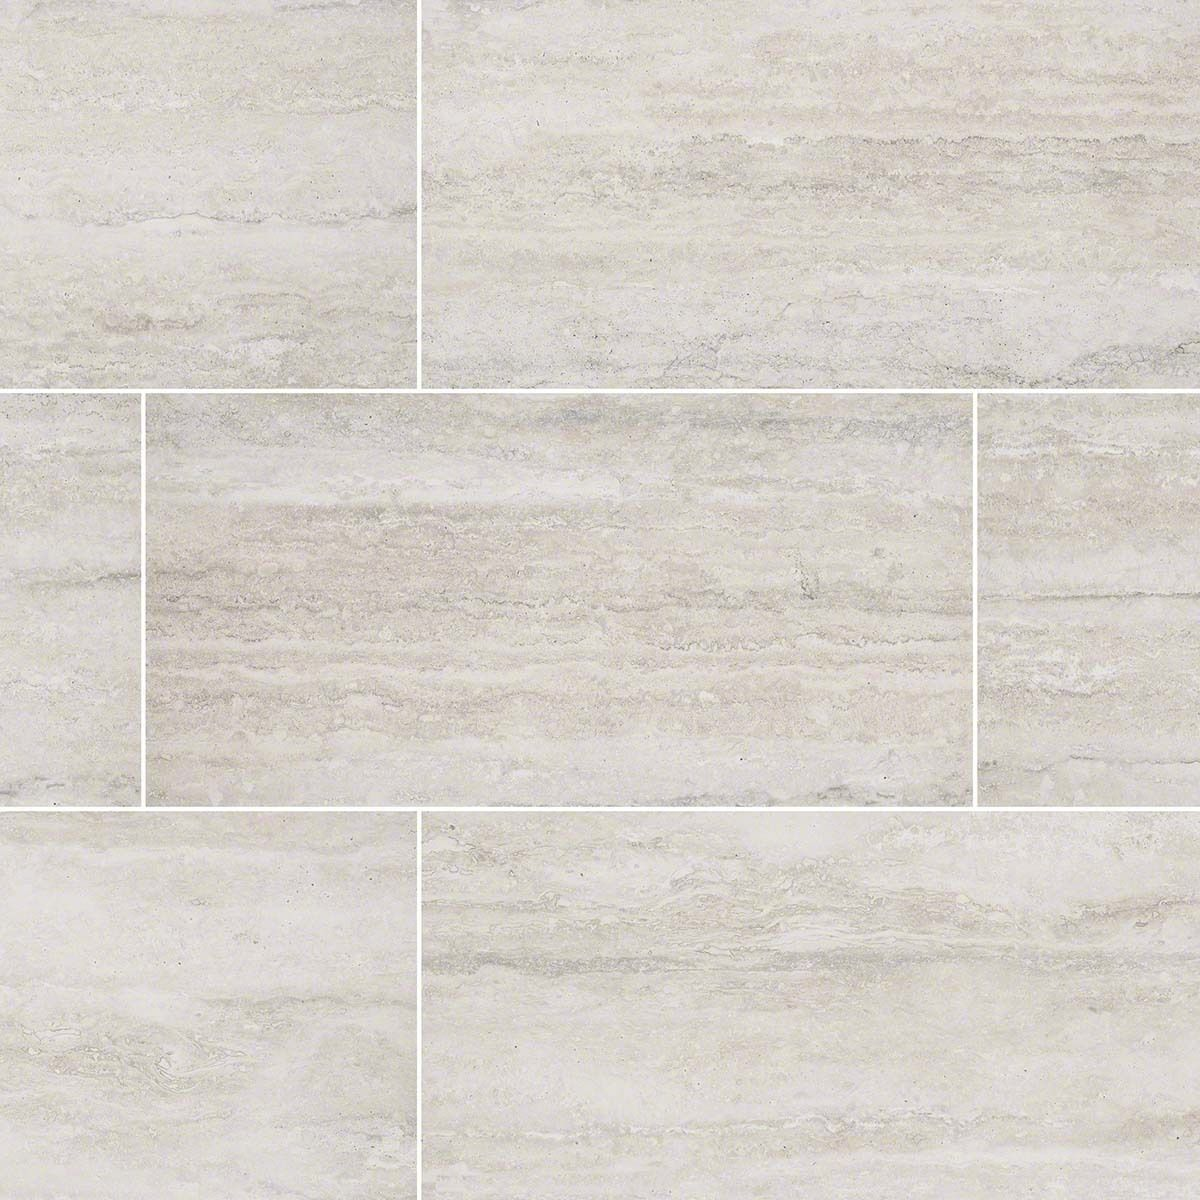 Veneto Collection White Matte Porcelain 12x24 Tiles Direct Store Tile Floor White Porcelain Tile Bathroom Countertops